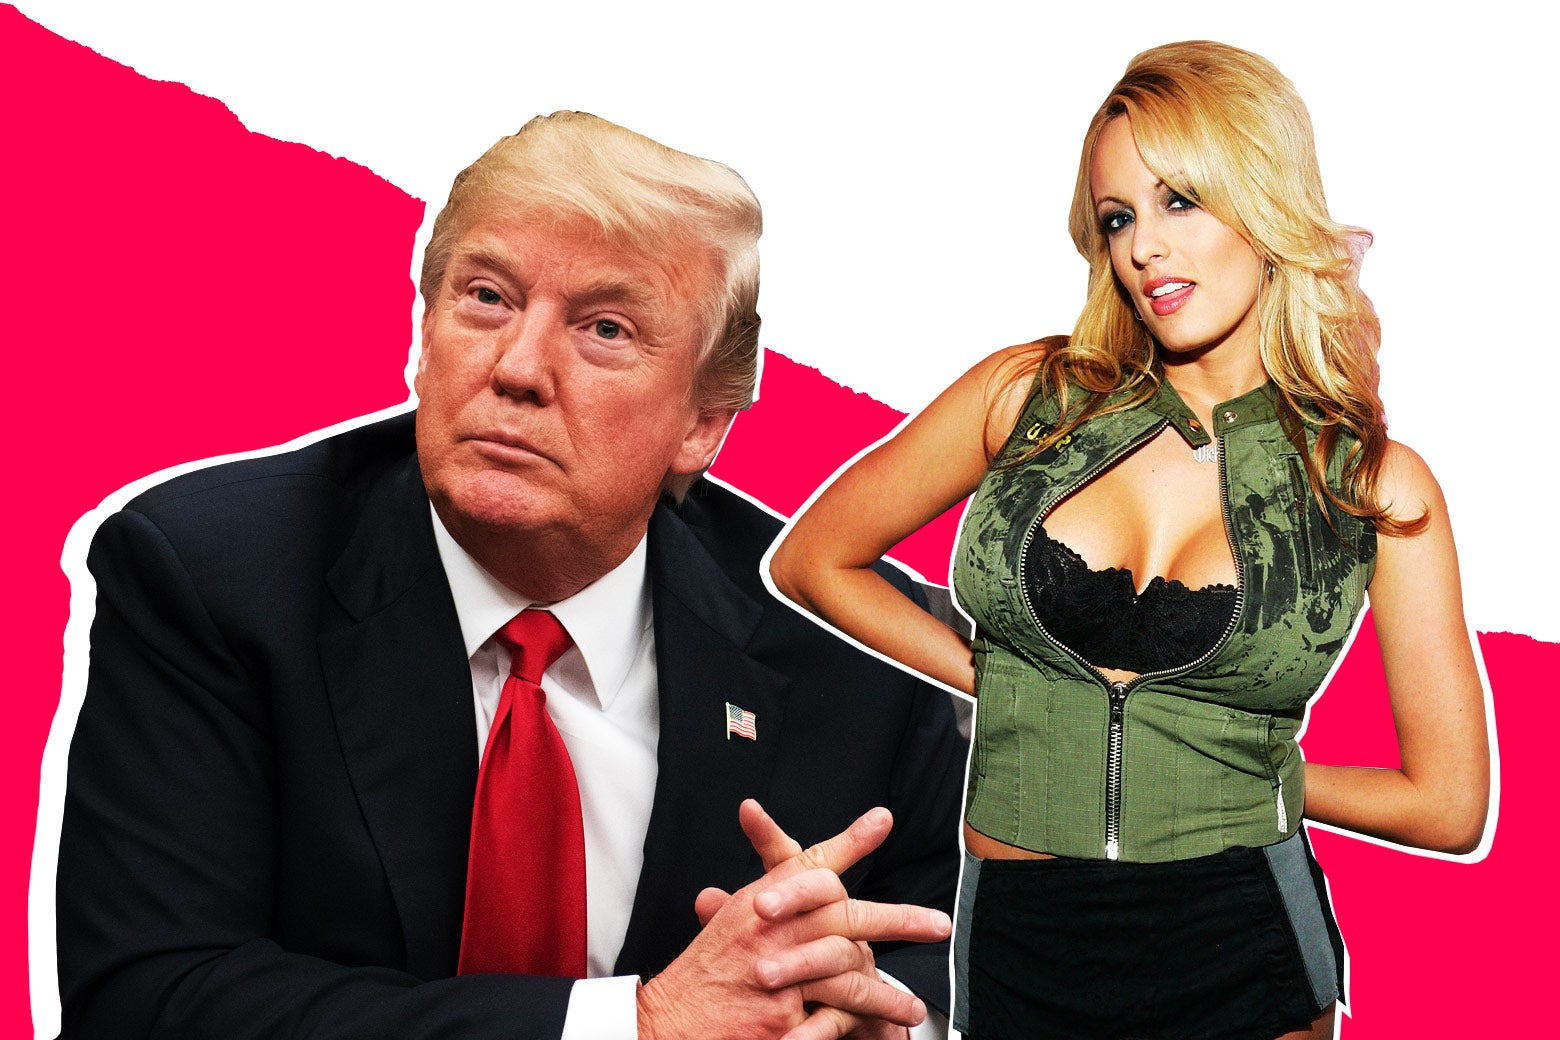 A photo illustration of President Donald Trump and Stormy Daniels.